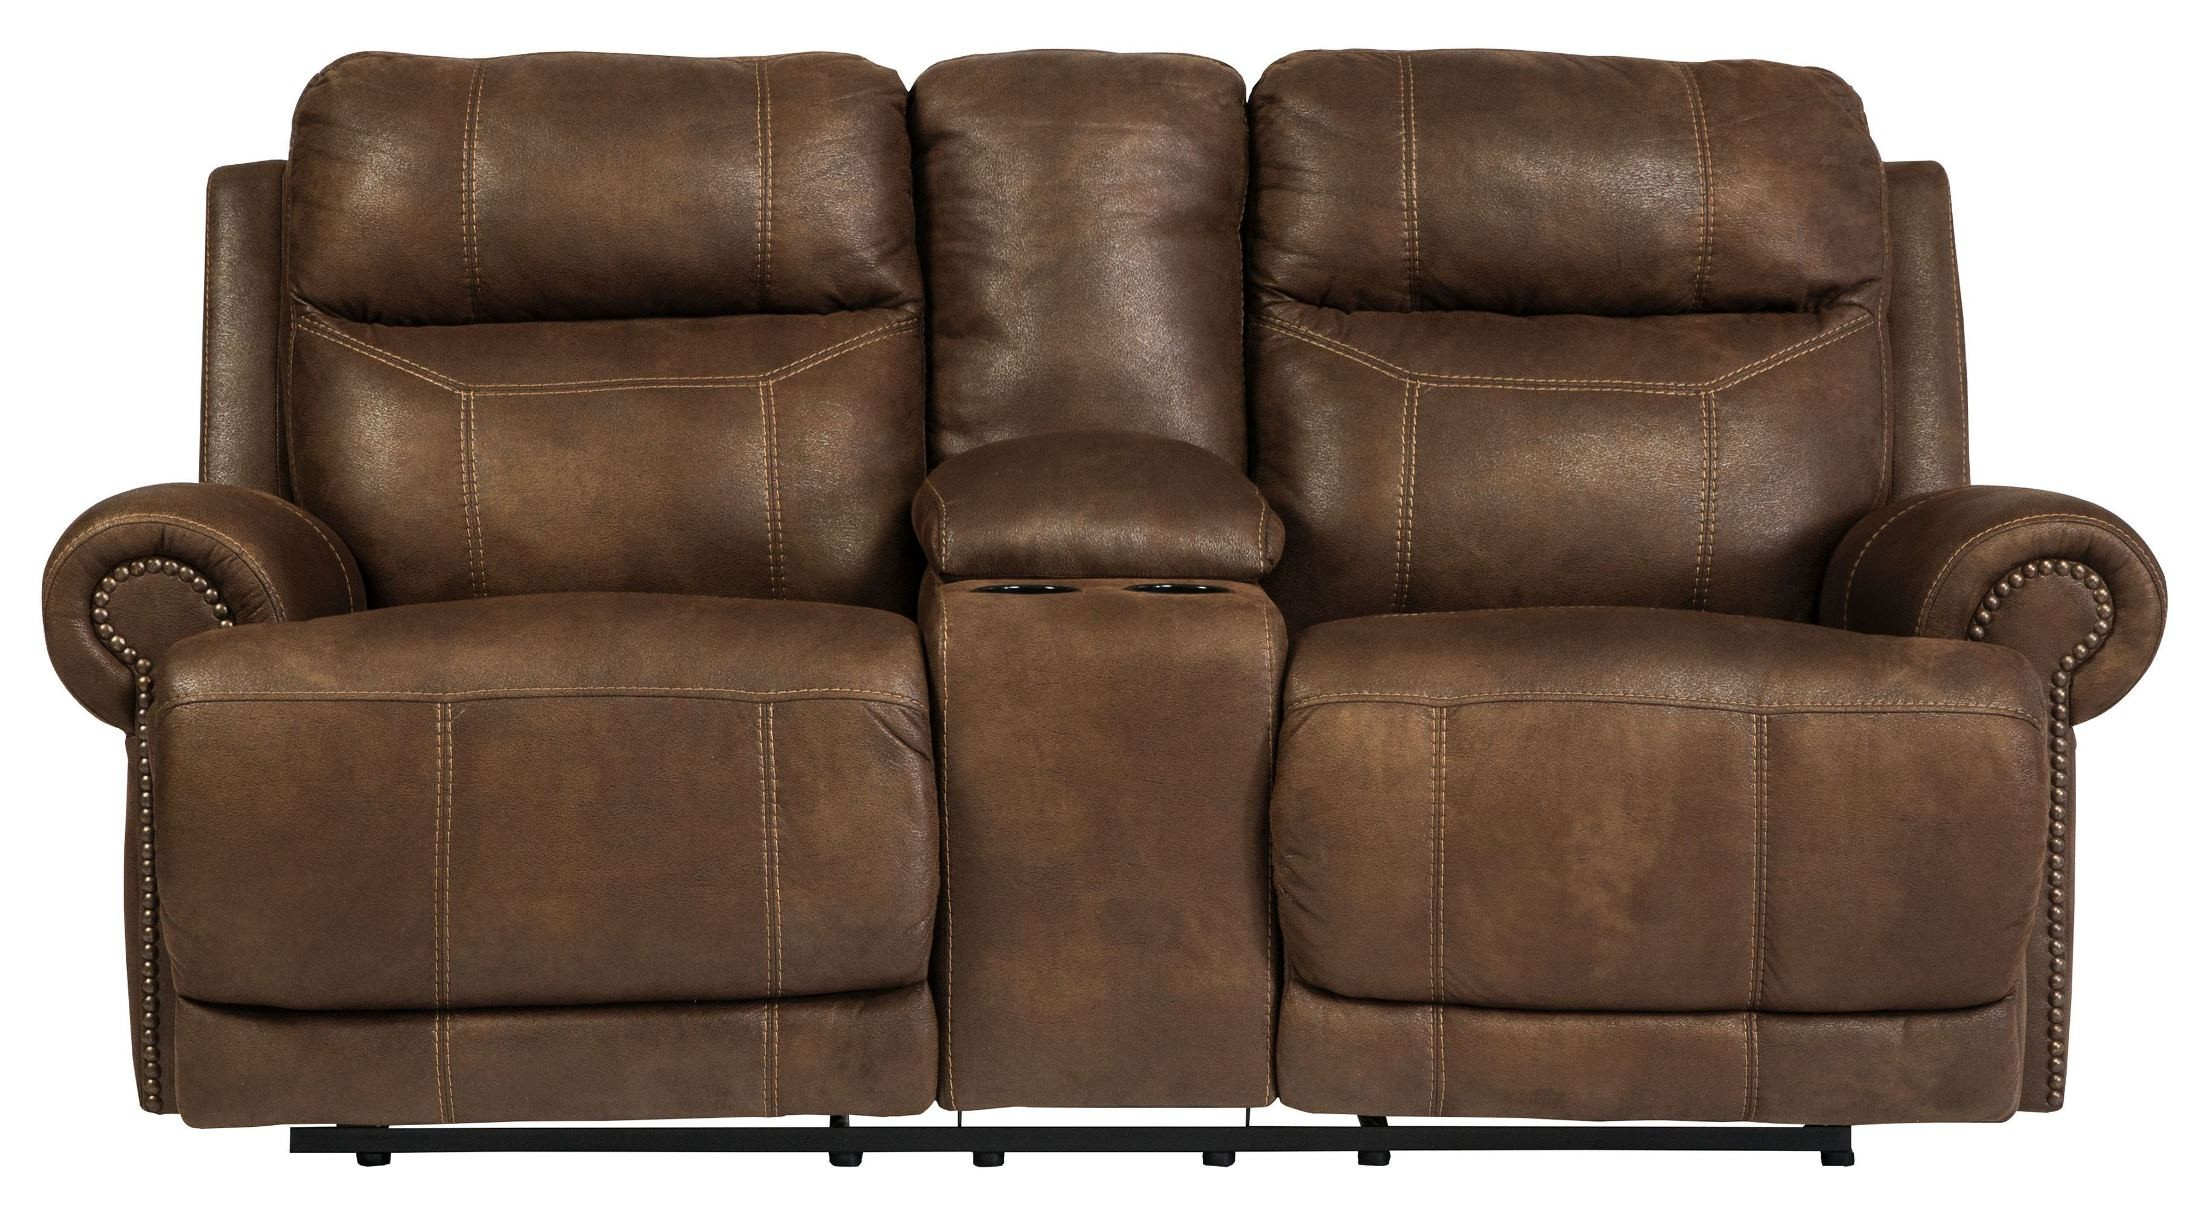 Austere Brown Double Power Reclining Loveseat With Console From Ashley 3840096 Coleman Furniture